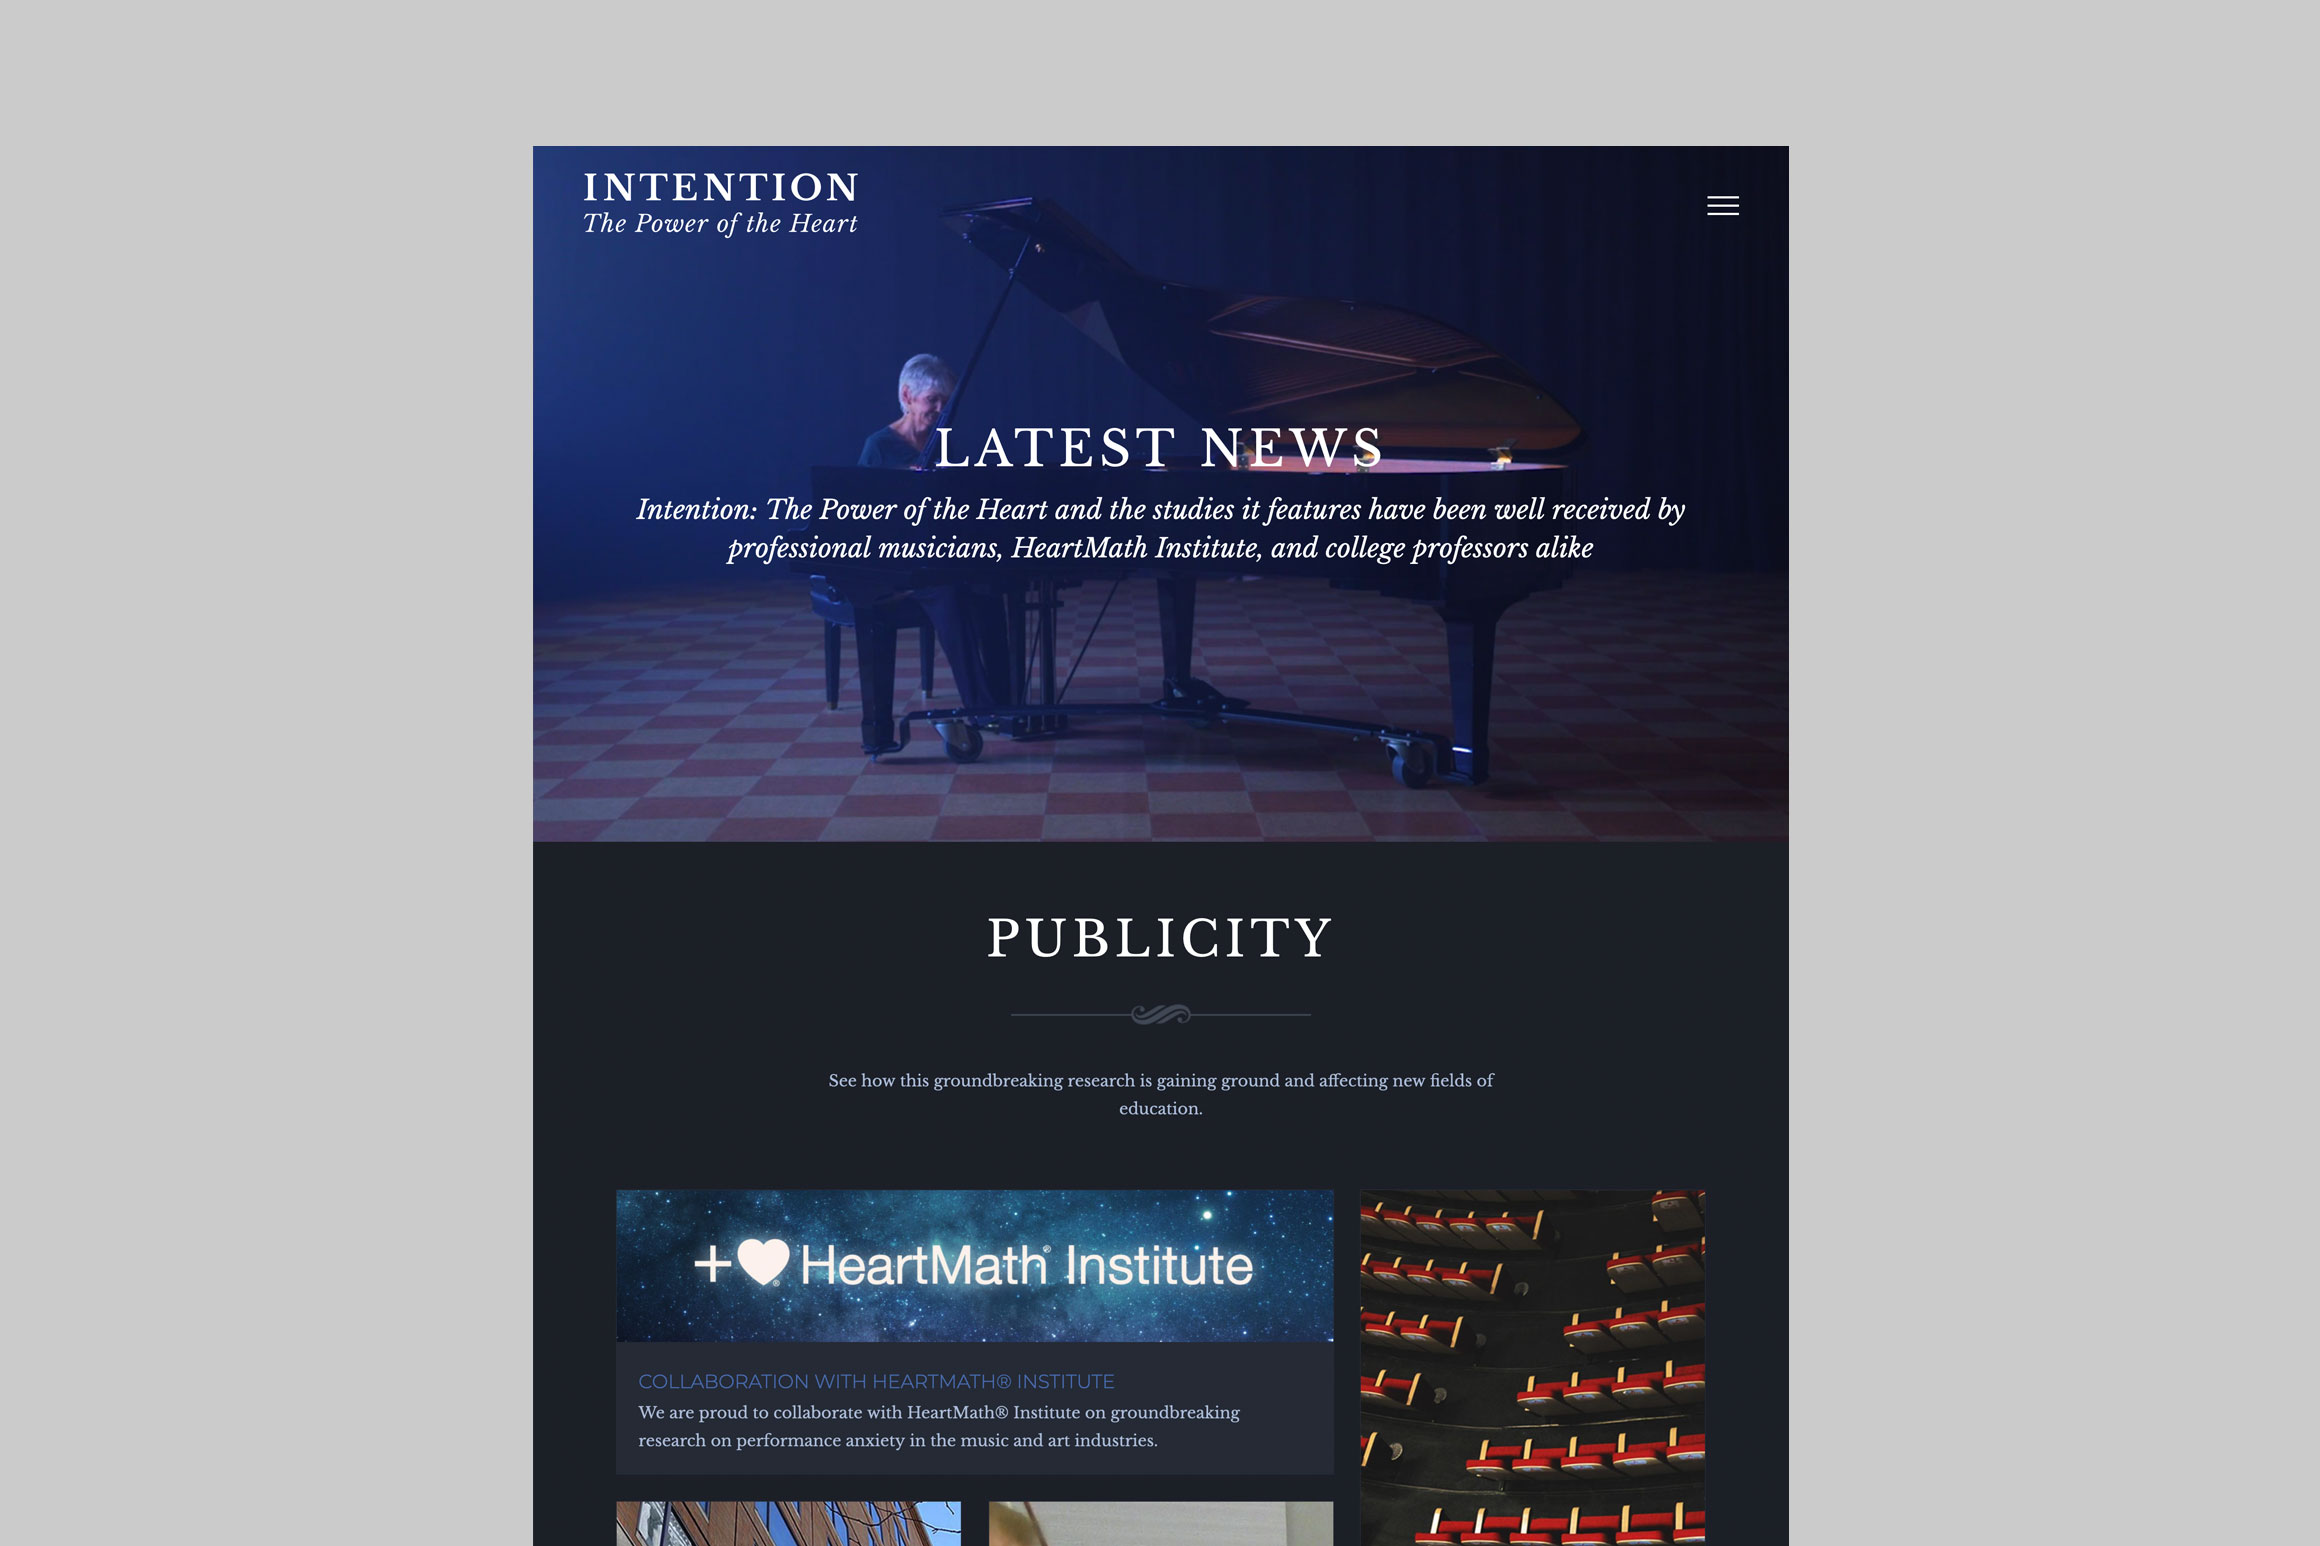 Intention Documentary Website - Latest News